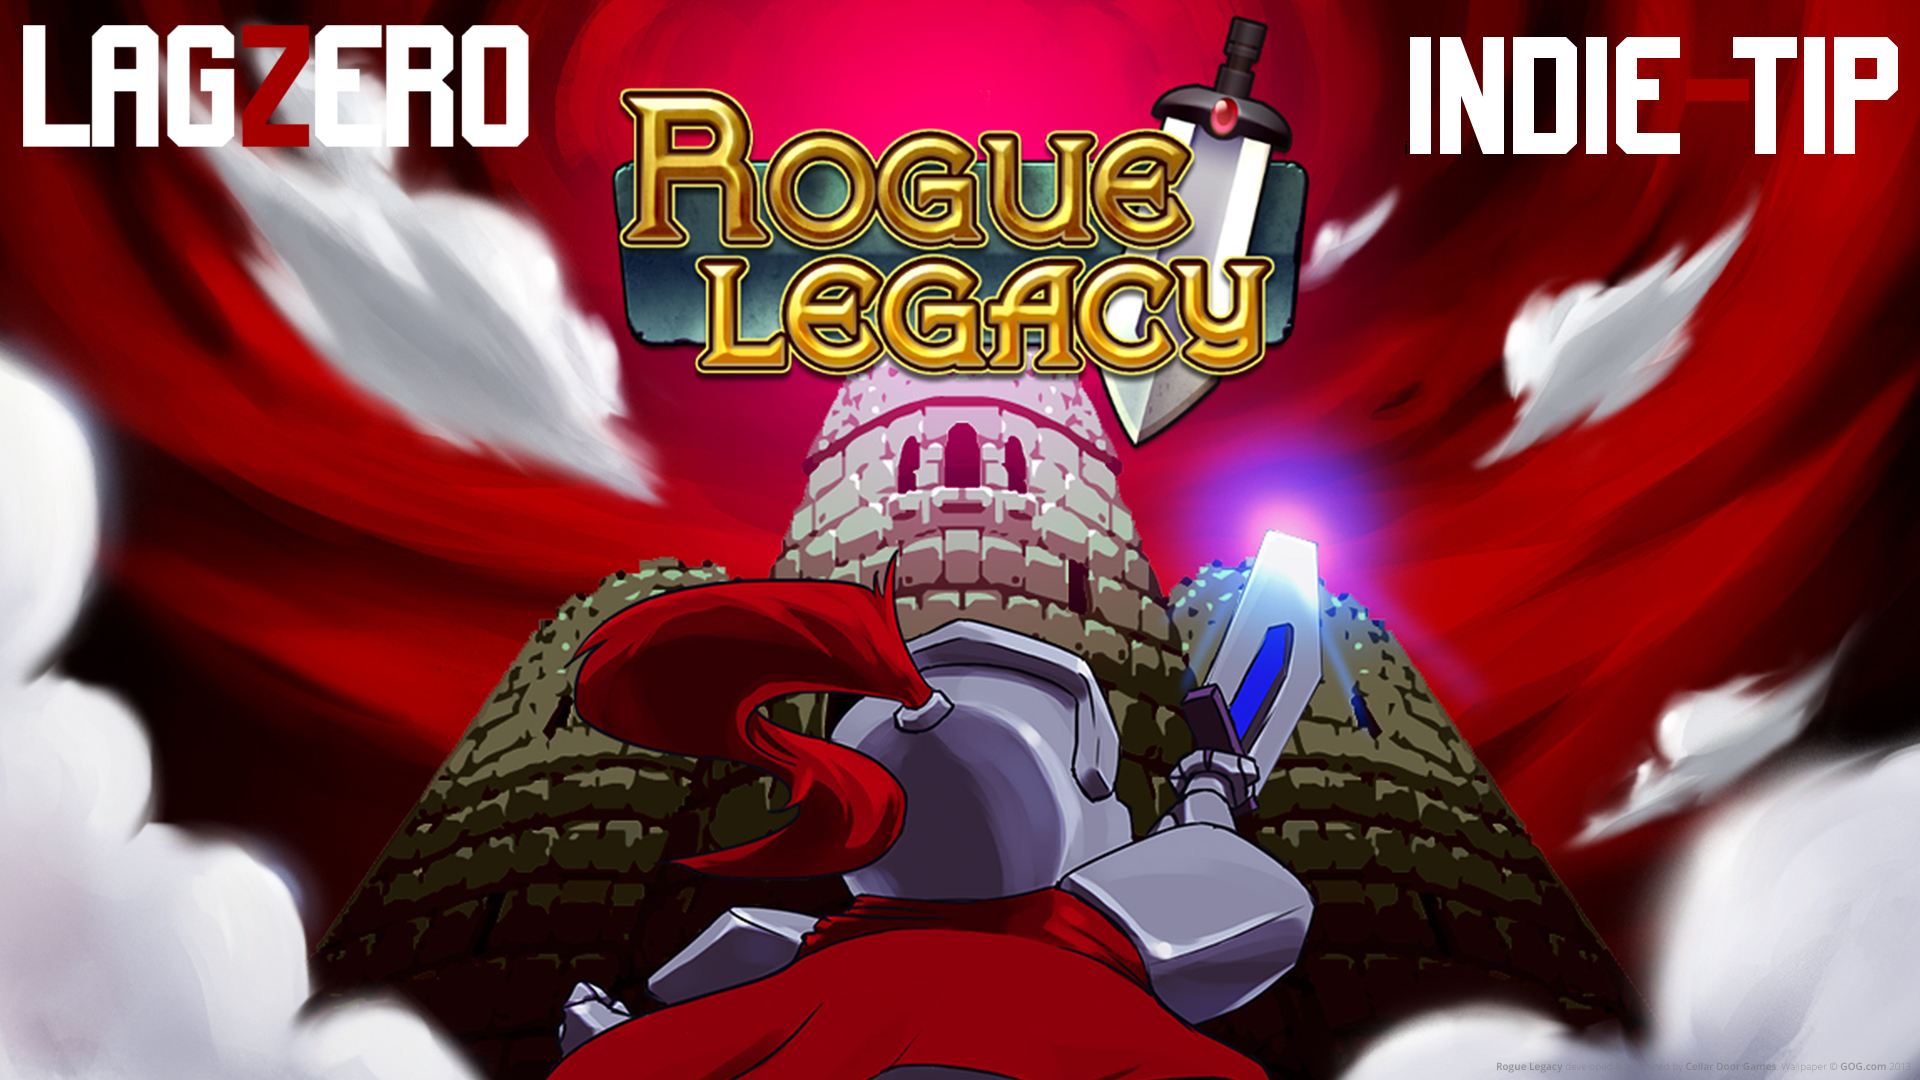 rogue-legacy-indietip-lz